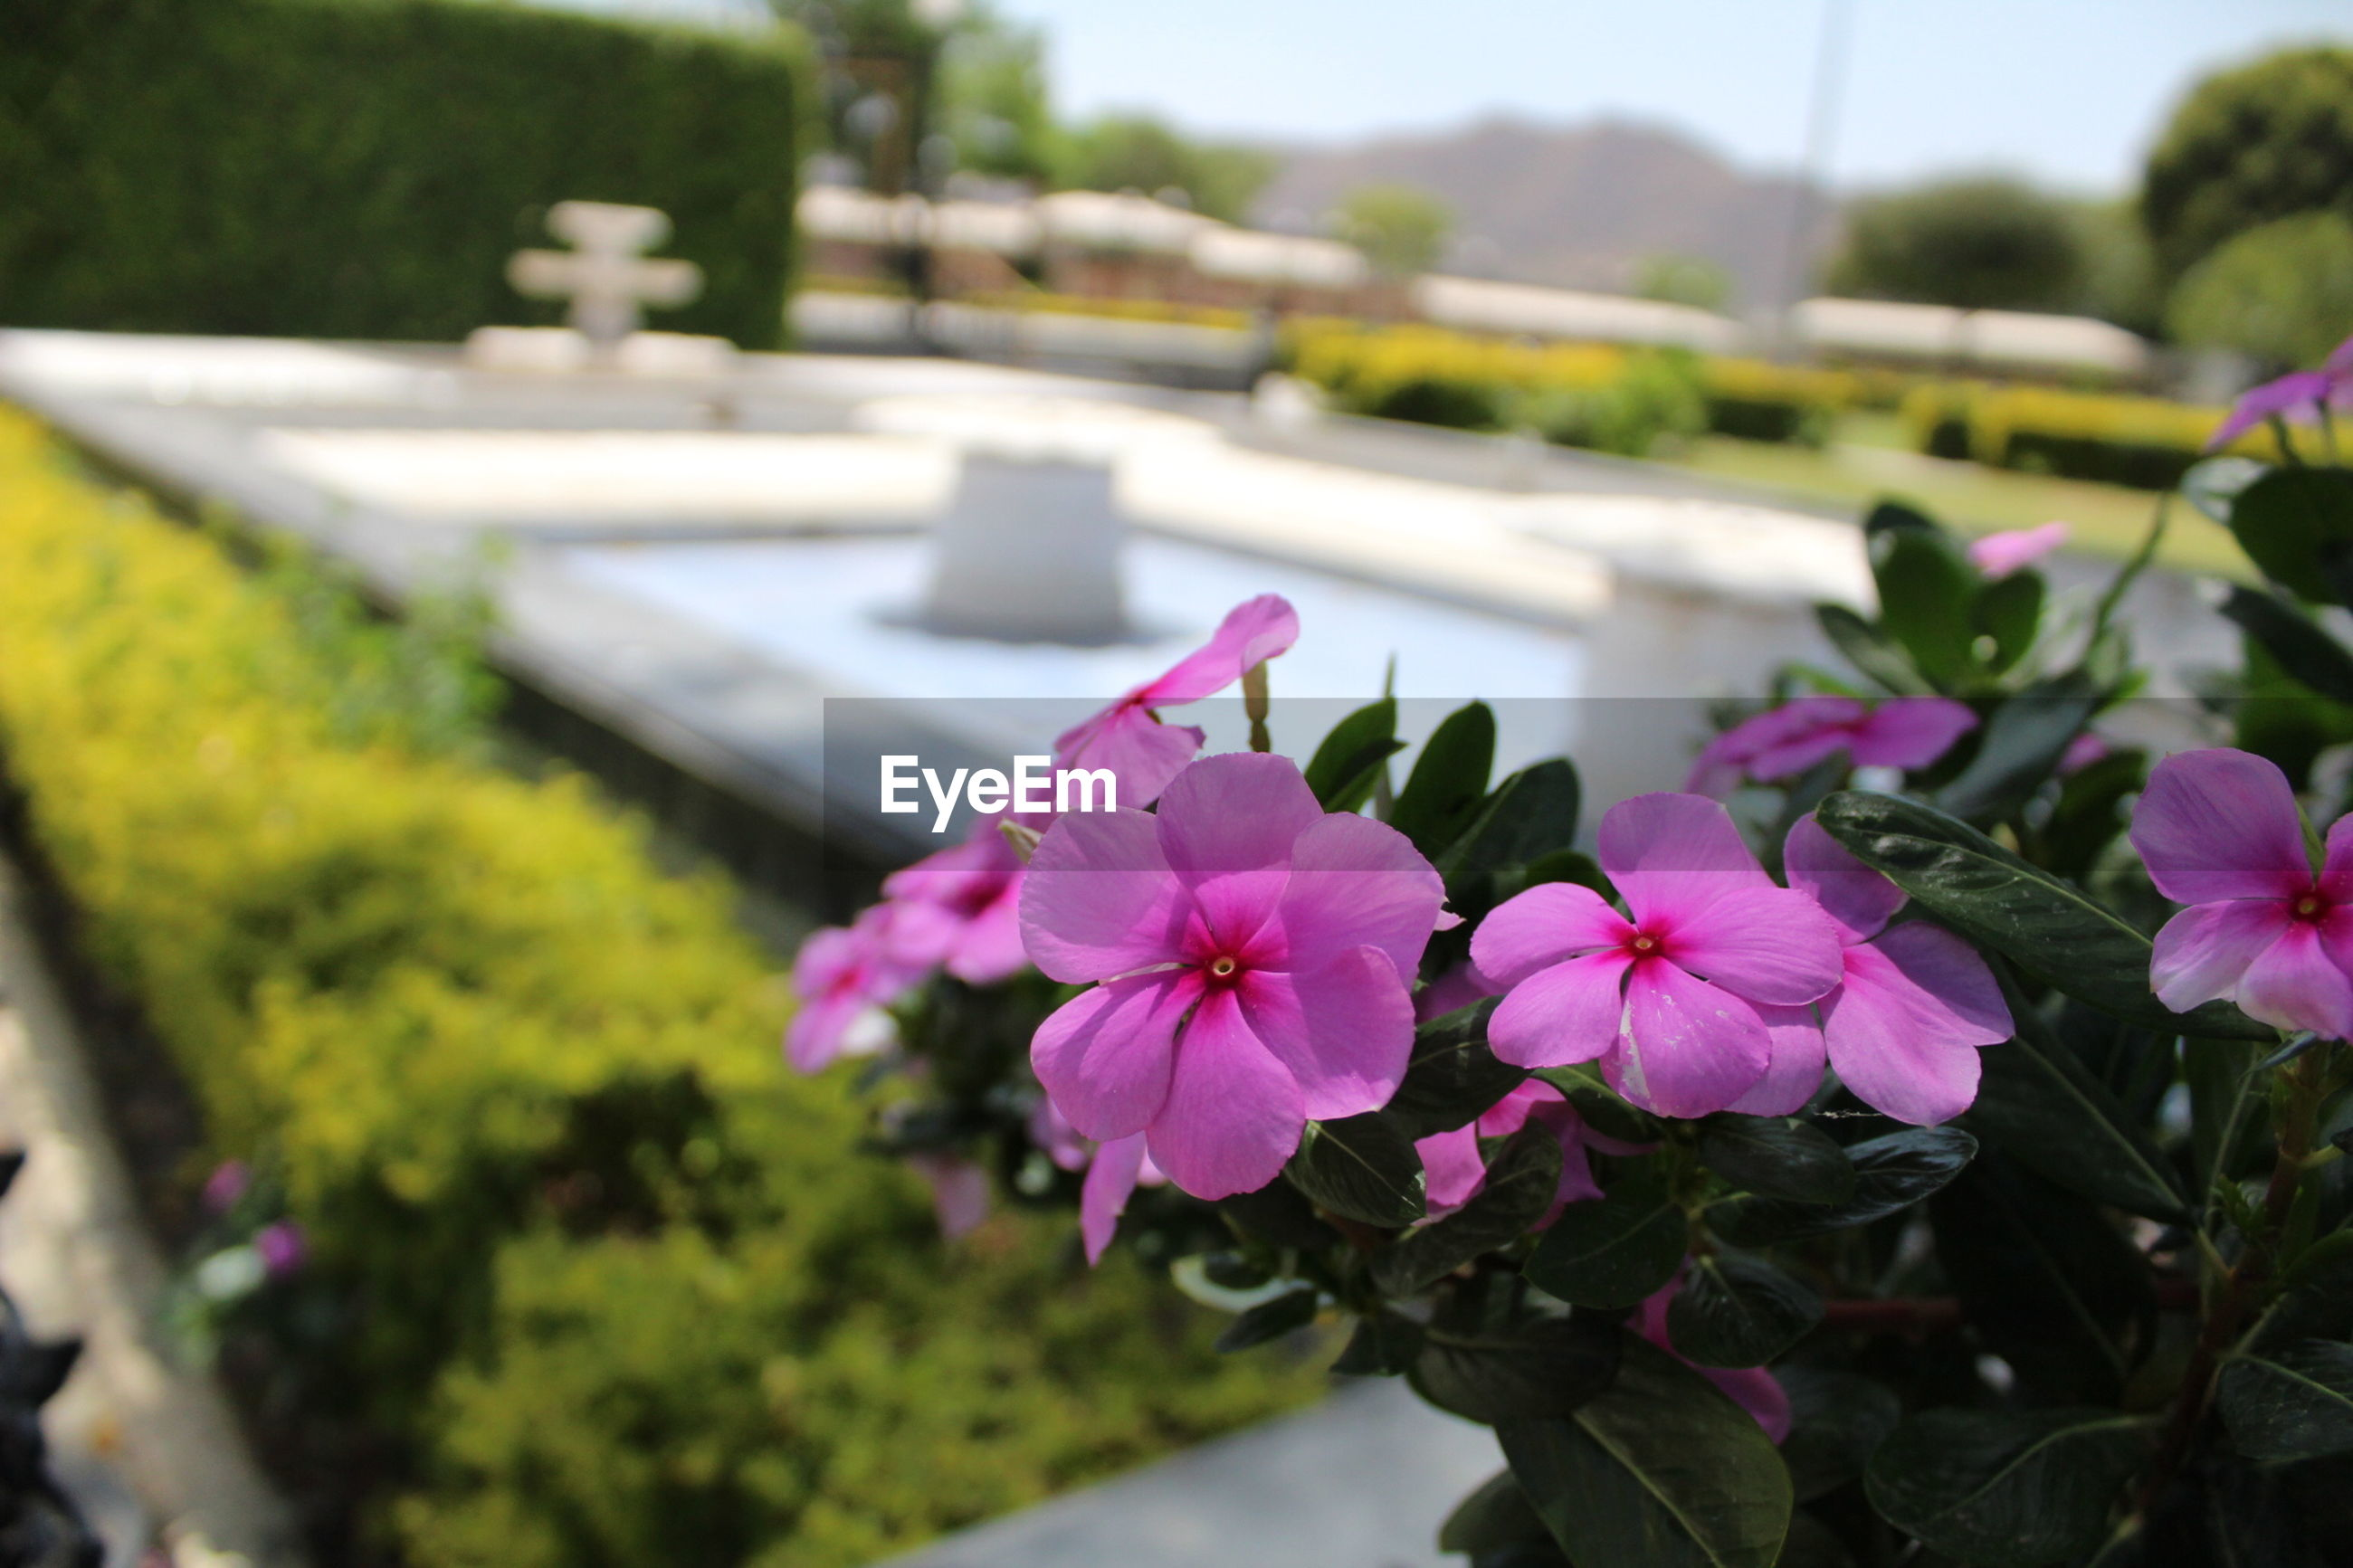 flower, petal, beauty in nature, fragility, nature, pink color, freshness, plant, growth, flower head, focus on foreground, no people, outdoors, day, blooming, close-up, periwinkle